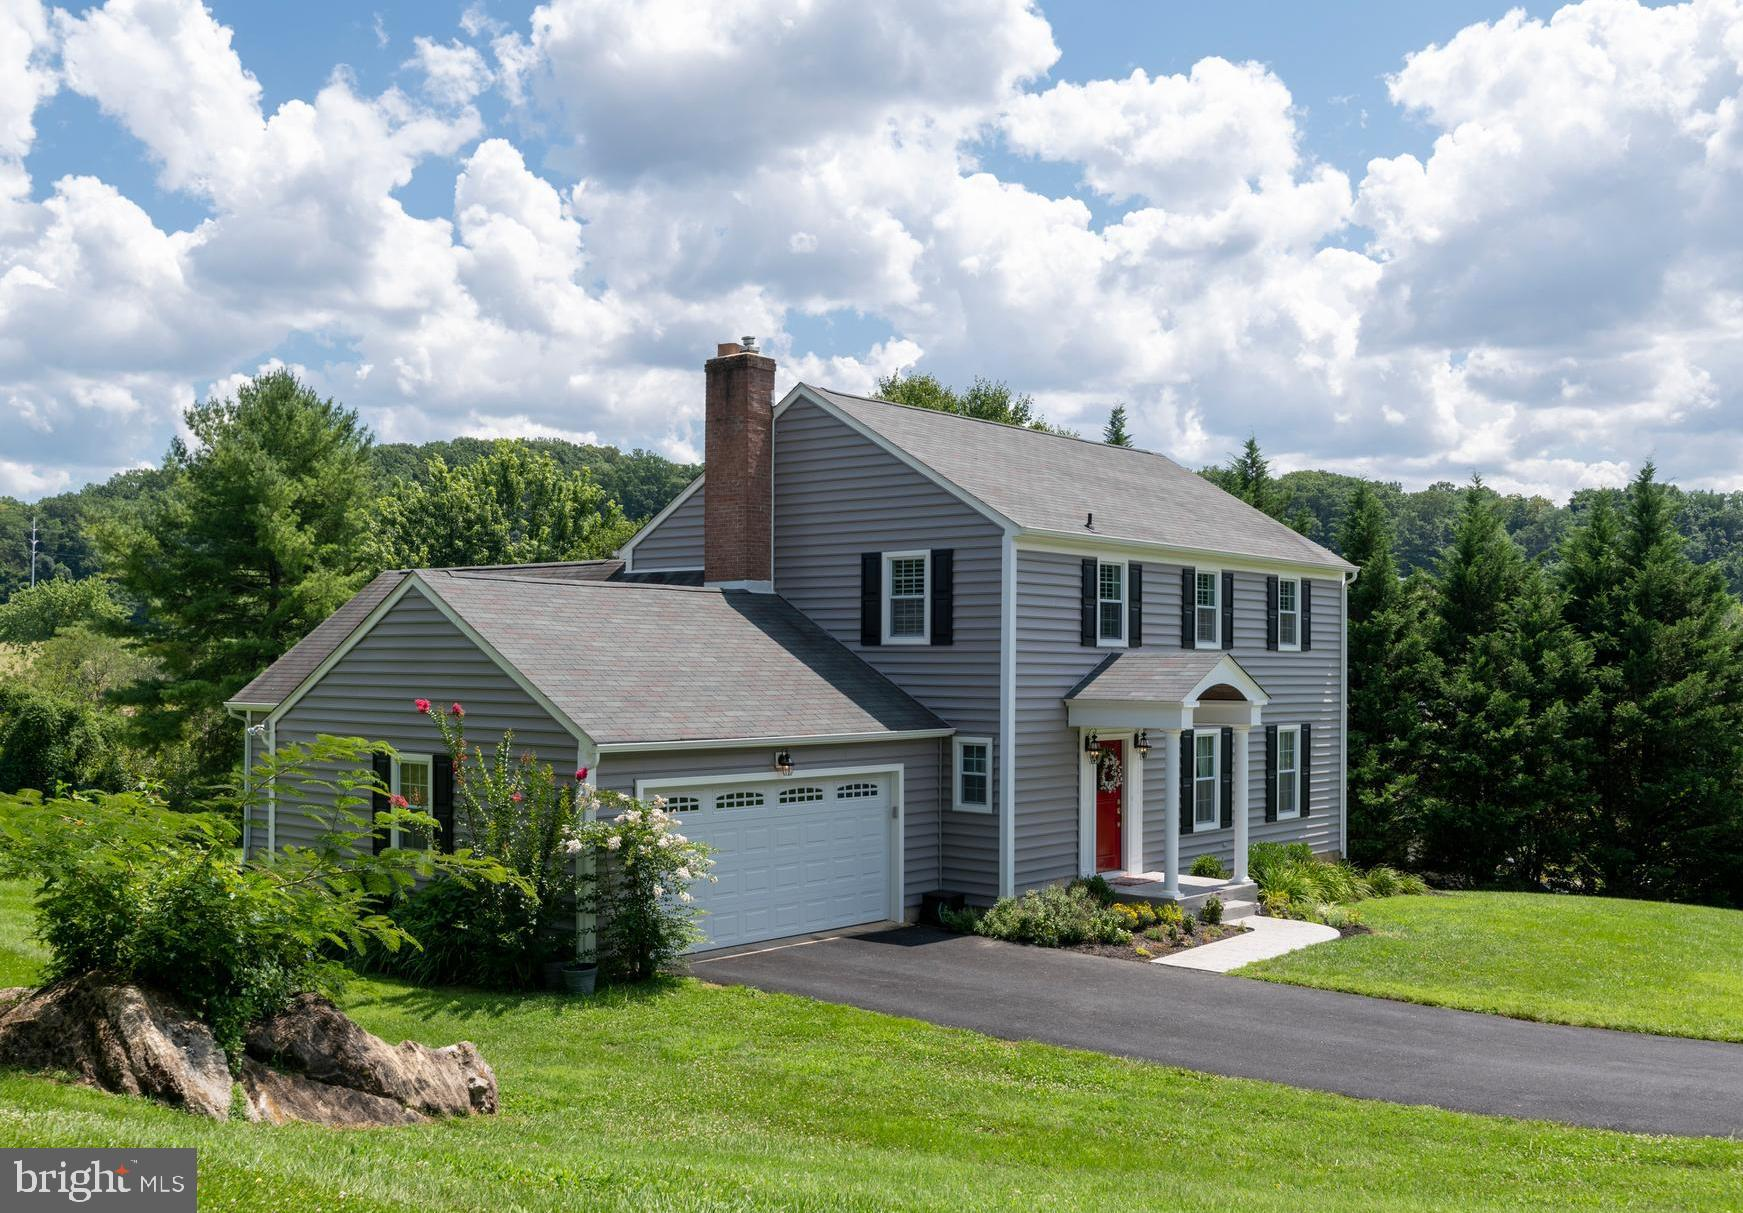 1219 BROOK HOLLOW ROAD, TOWSON, MD 21286